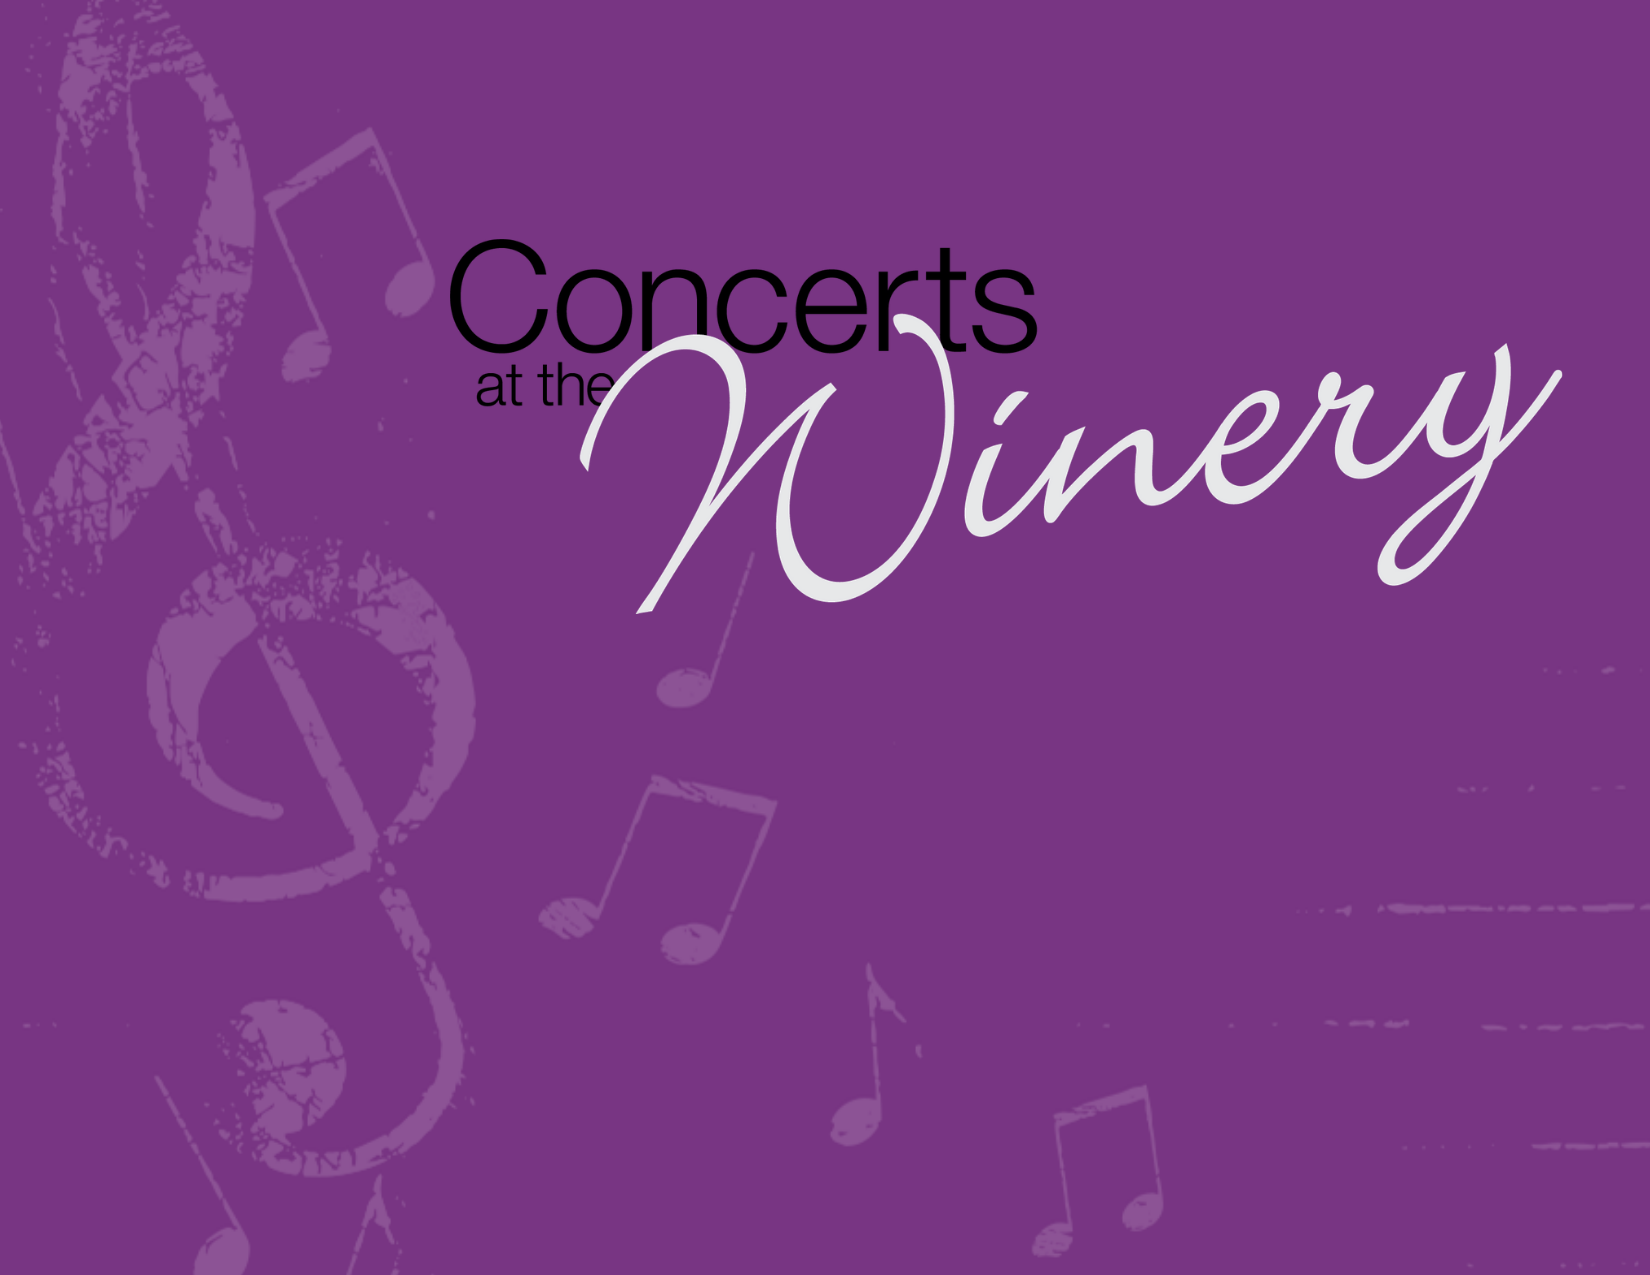 concerts at the winery new web version